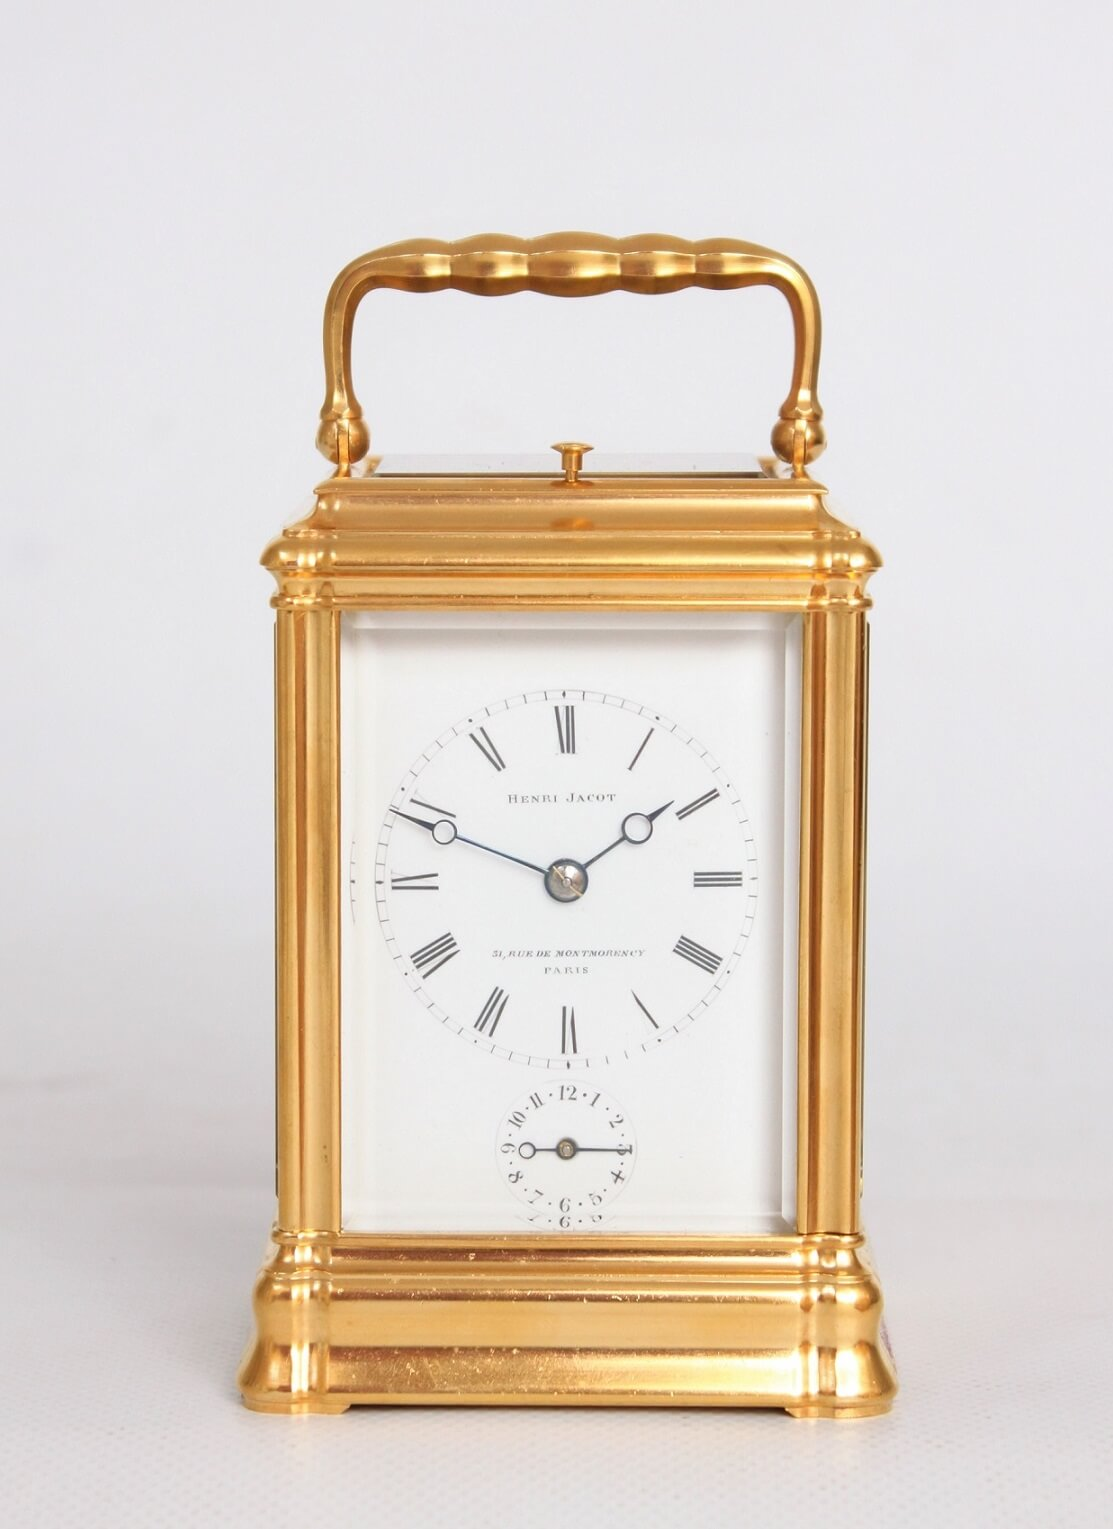 French-antique clock-carriage clock-striking-alarm-gilt brass-gorge case-Henri Jacot